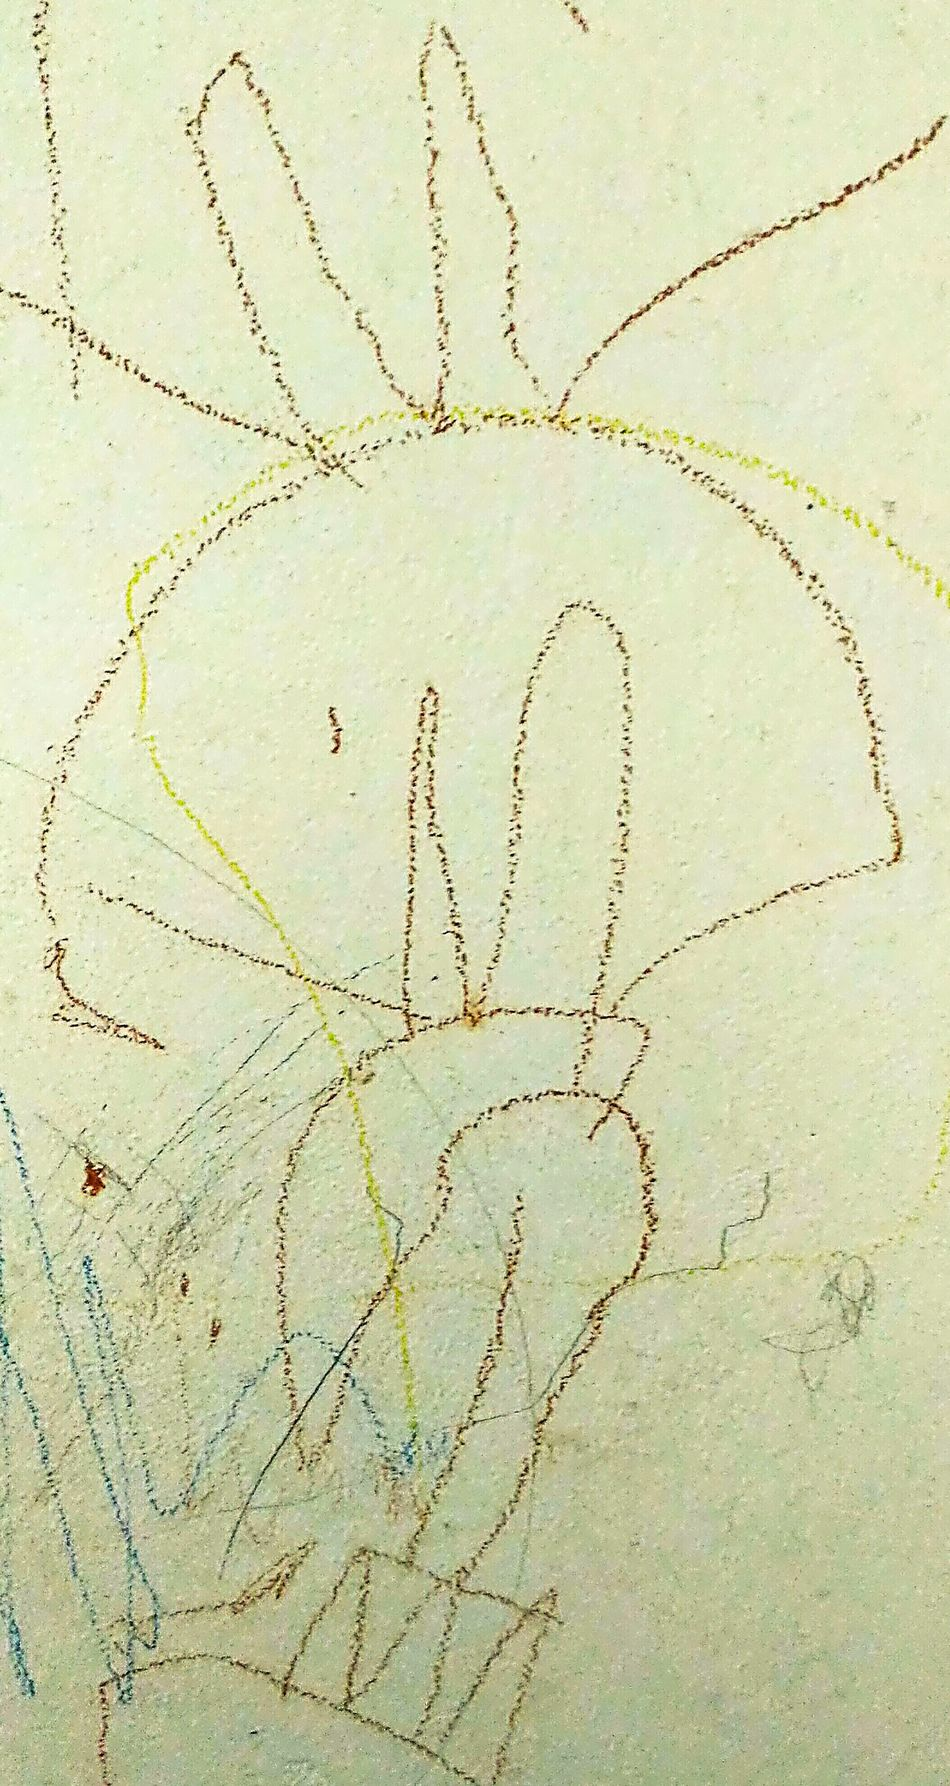 Painting by little kid,This thing no have copyright.It's Public for you learn to development of kid. Kid Development Development Of Kid Animal Rabbit Bunny  Lovely Lovely Animal Baby Child Children Childhood Education Insperation Intelligent Painting Paint Drawing Imagine Dirty ArtWork Art Experience Background Wallpaper